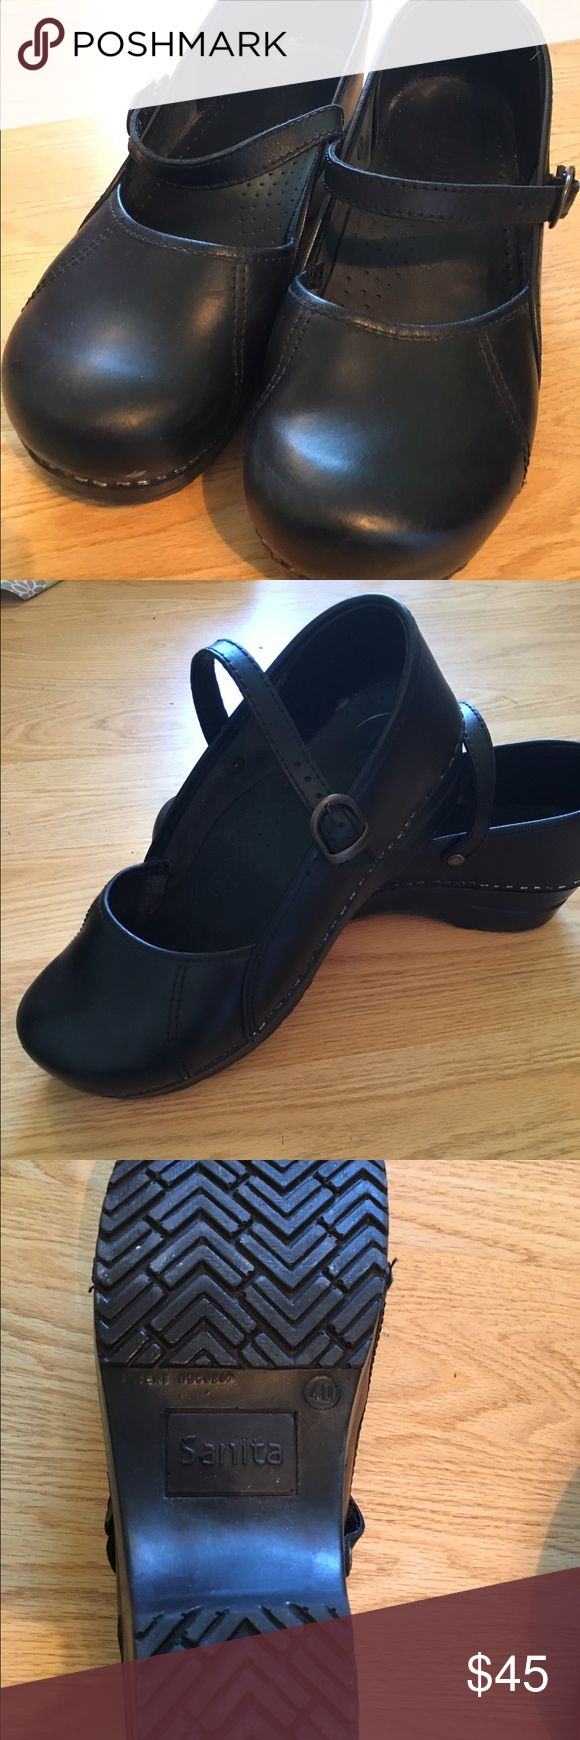 Black Sanita Mary Jane's These black Sanita Mary Jane's are in excellent condition.  Just like my Dansko's, comfortable and cute. Sanita Shoes Mules & Clogs